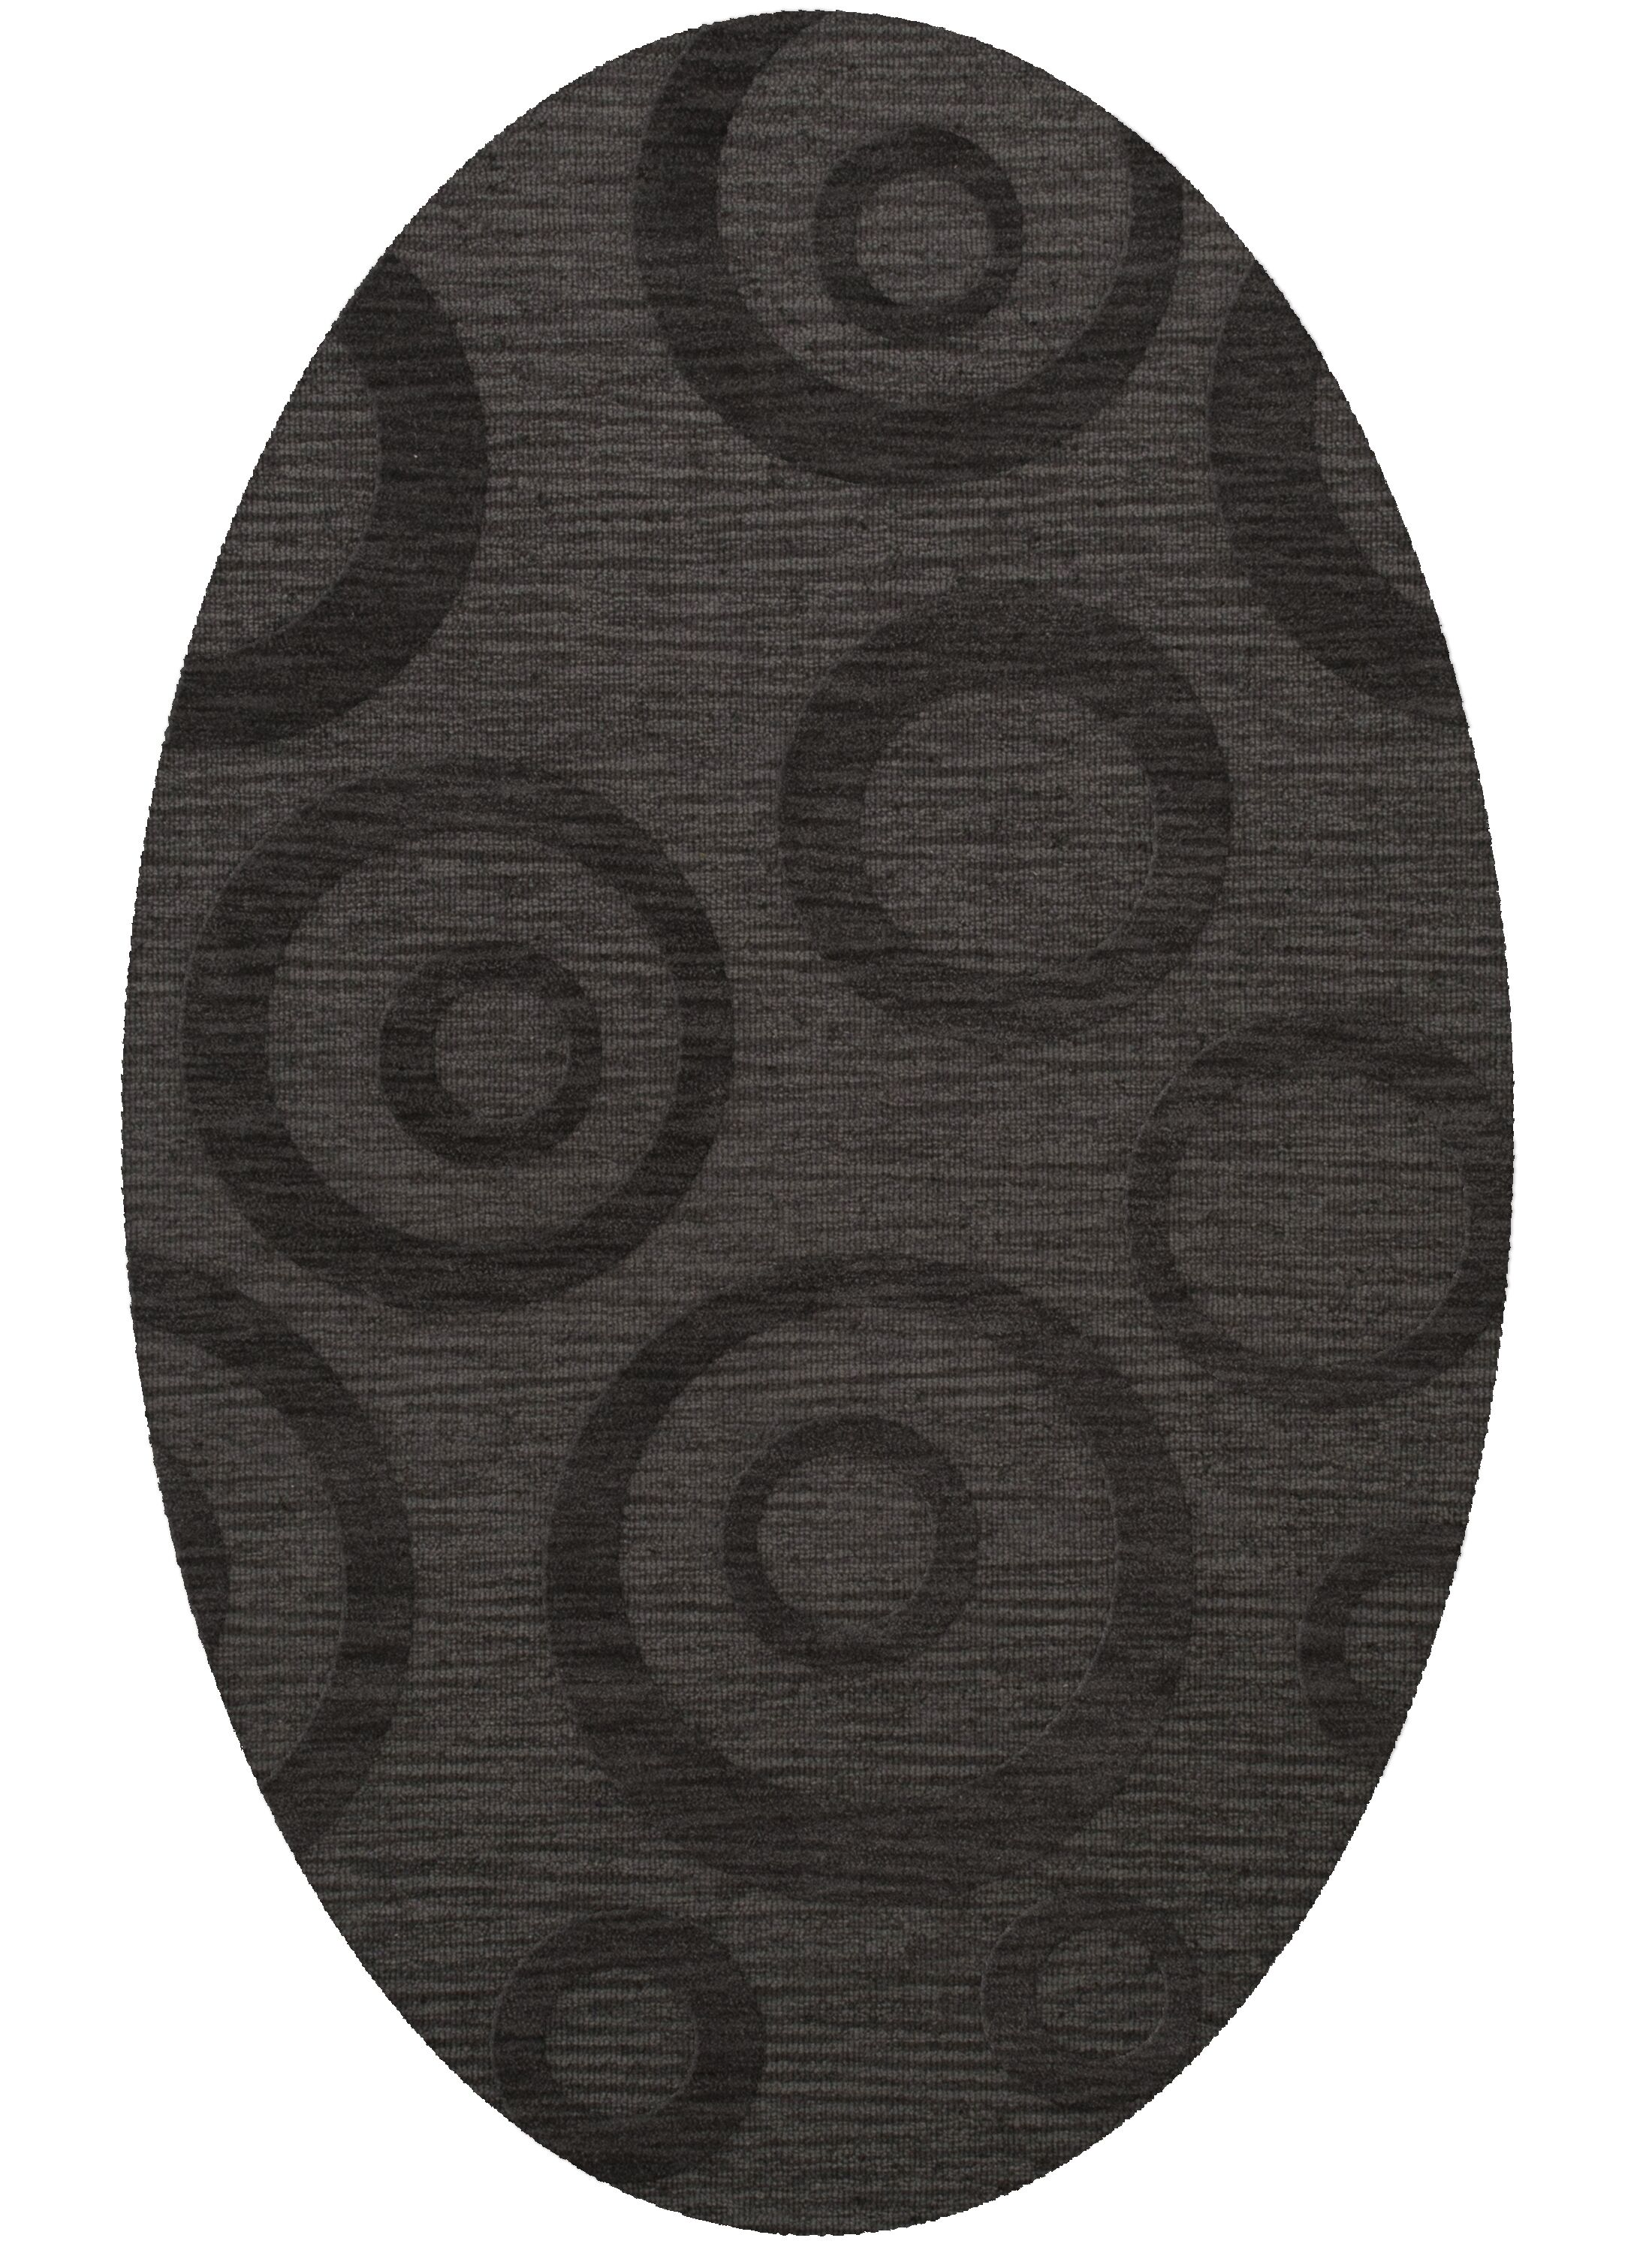 Dover Tufted Wool Ash Area Rug Rug Size: Oval 9' x 12'